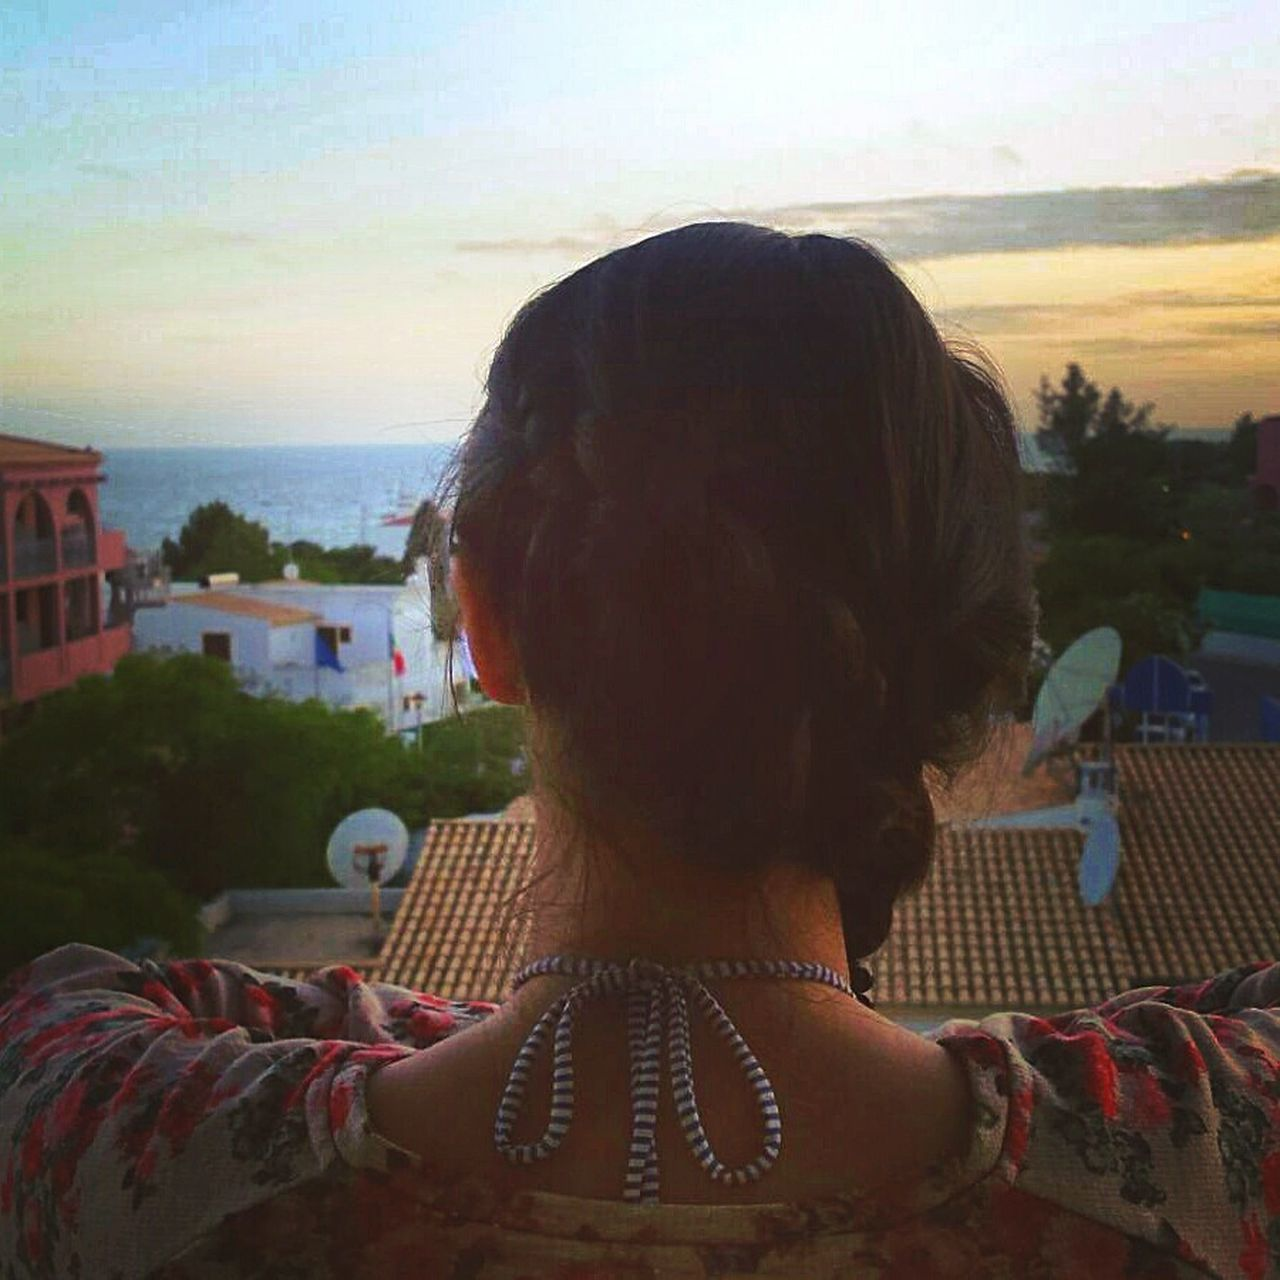 Backview Sky Skyline Albufeira One Person Braided Hair Bikini Summer Balconyview People EyeEmNewHere Women Around The World Place Of Heart Live For The Story